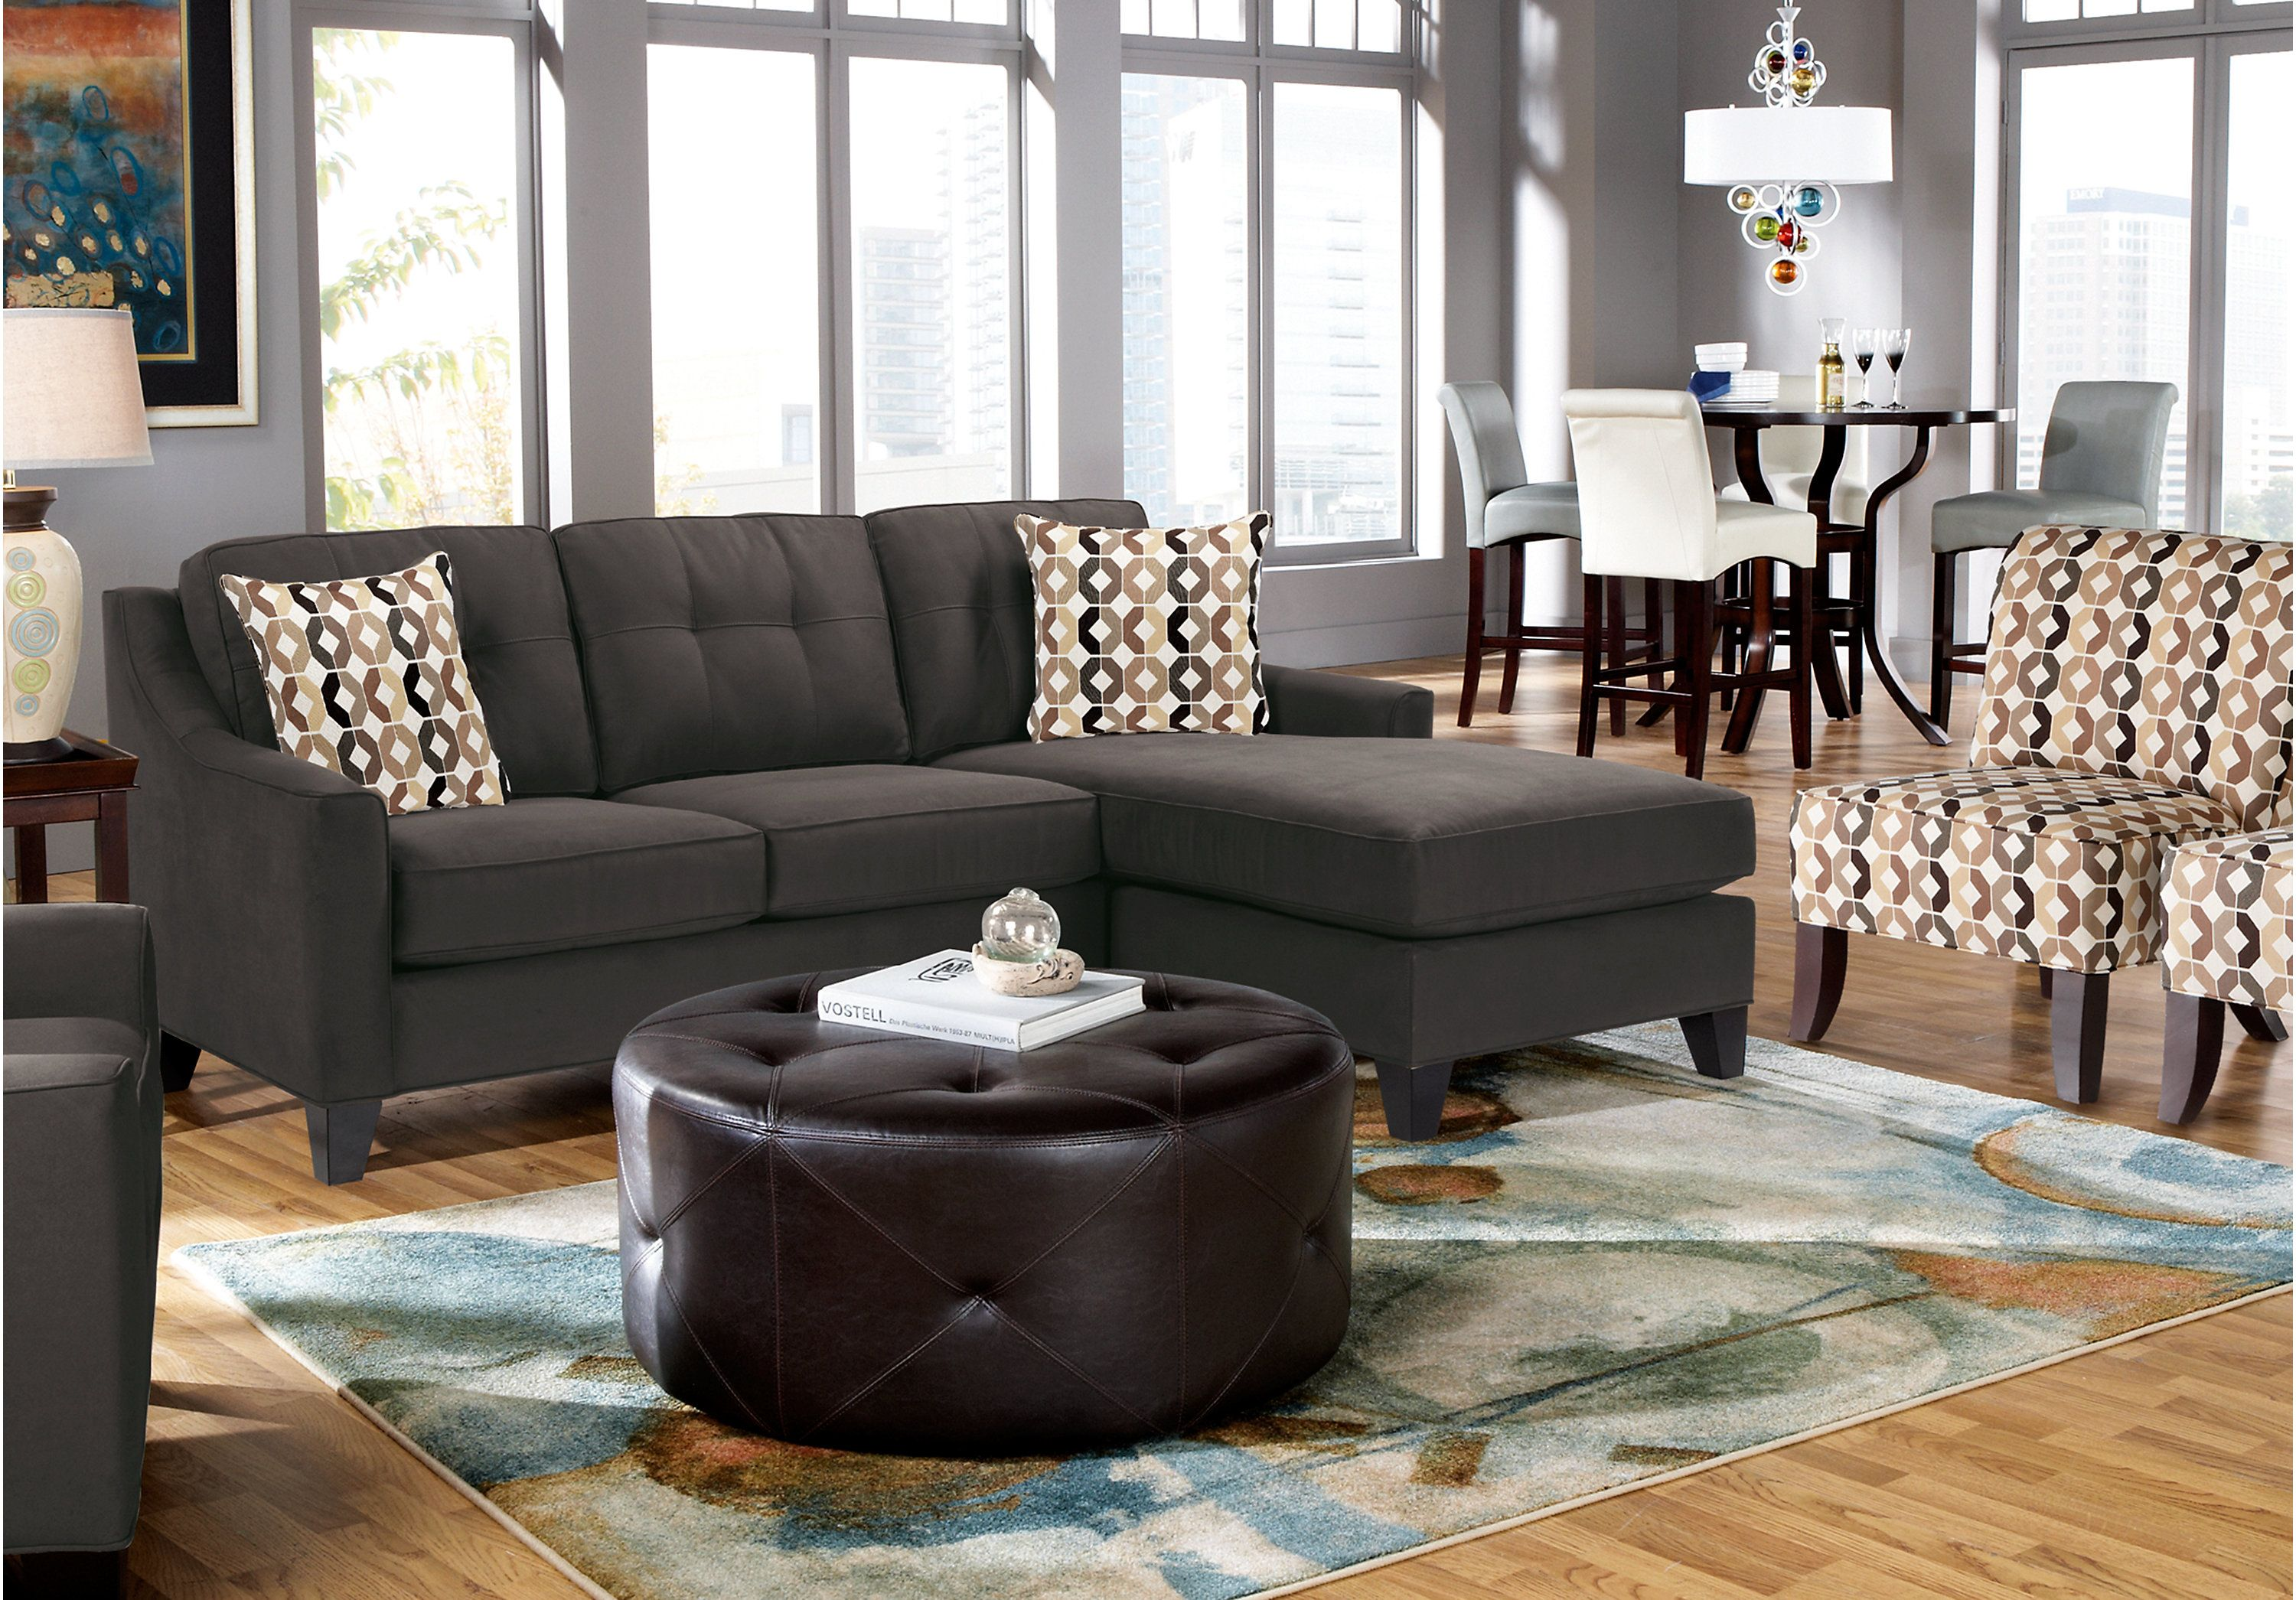 cascadia century and dark sectionals sectional modern furniture article right sale pin for blue mid sven velvet scandinavian tufted sofa